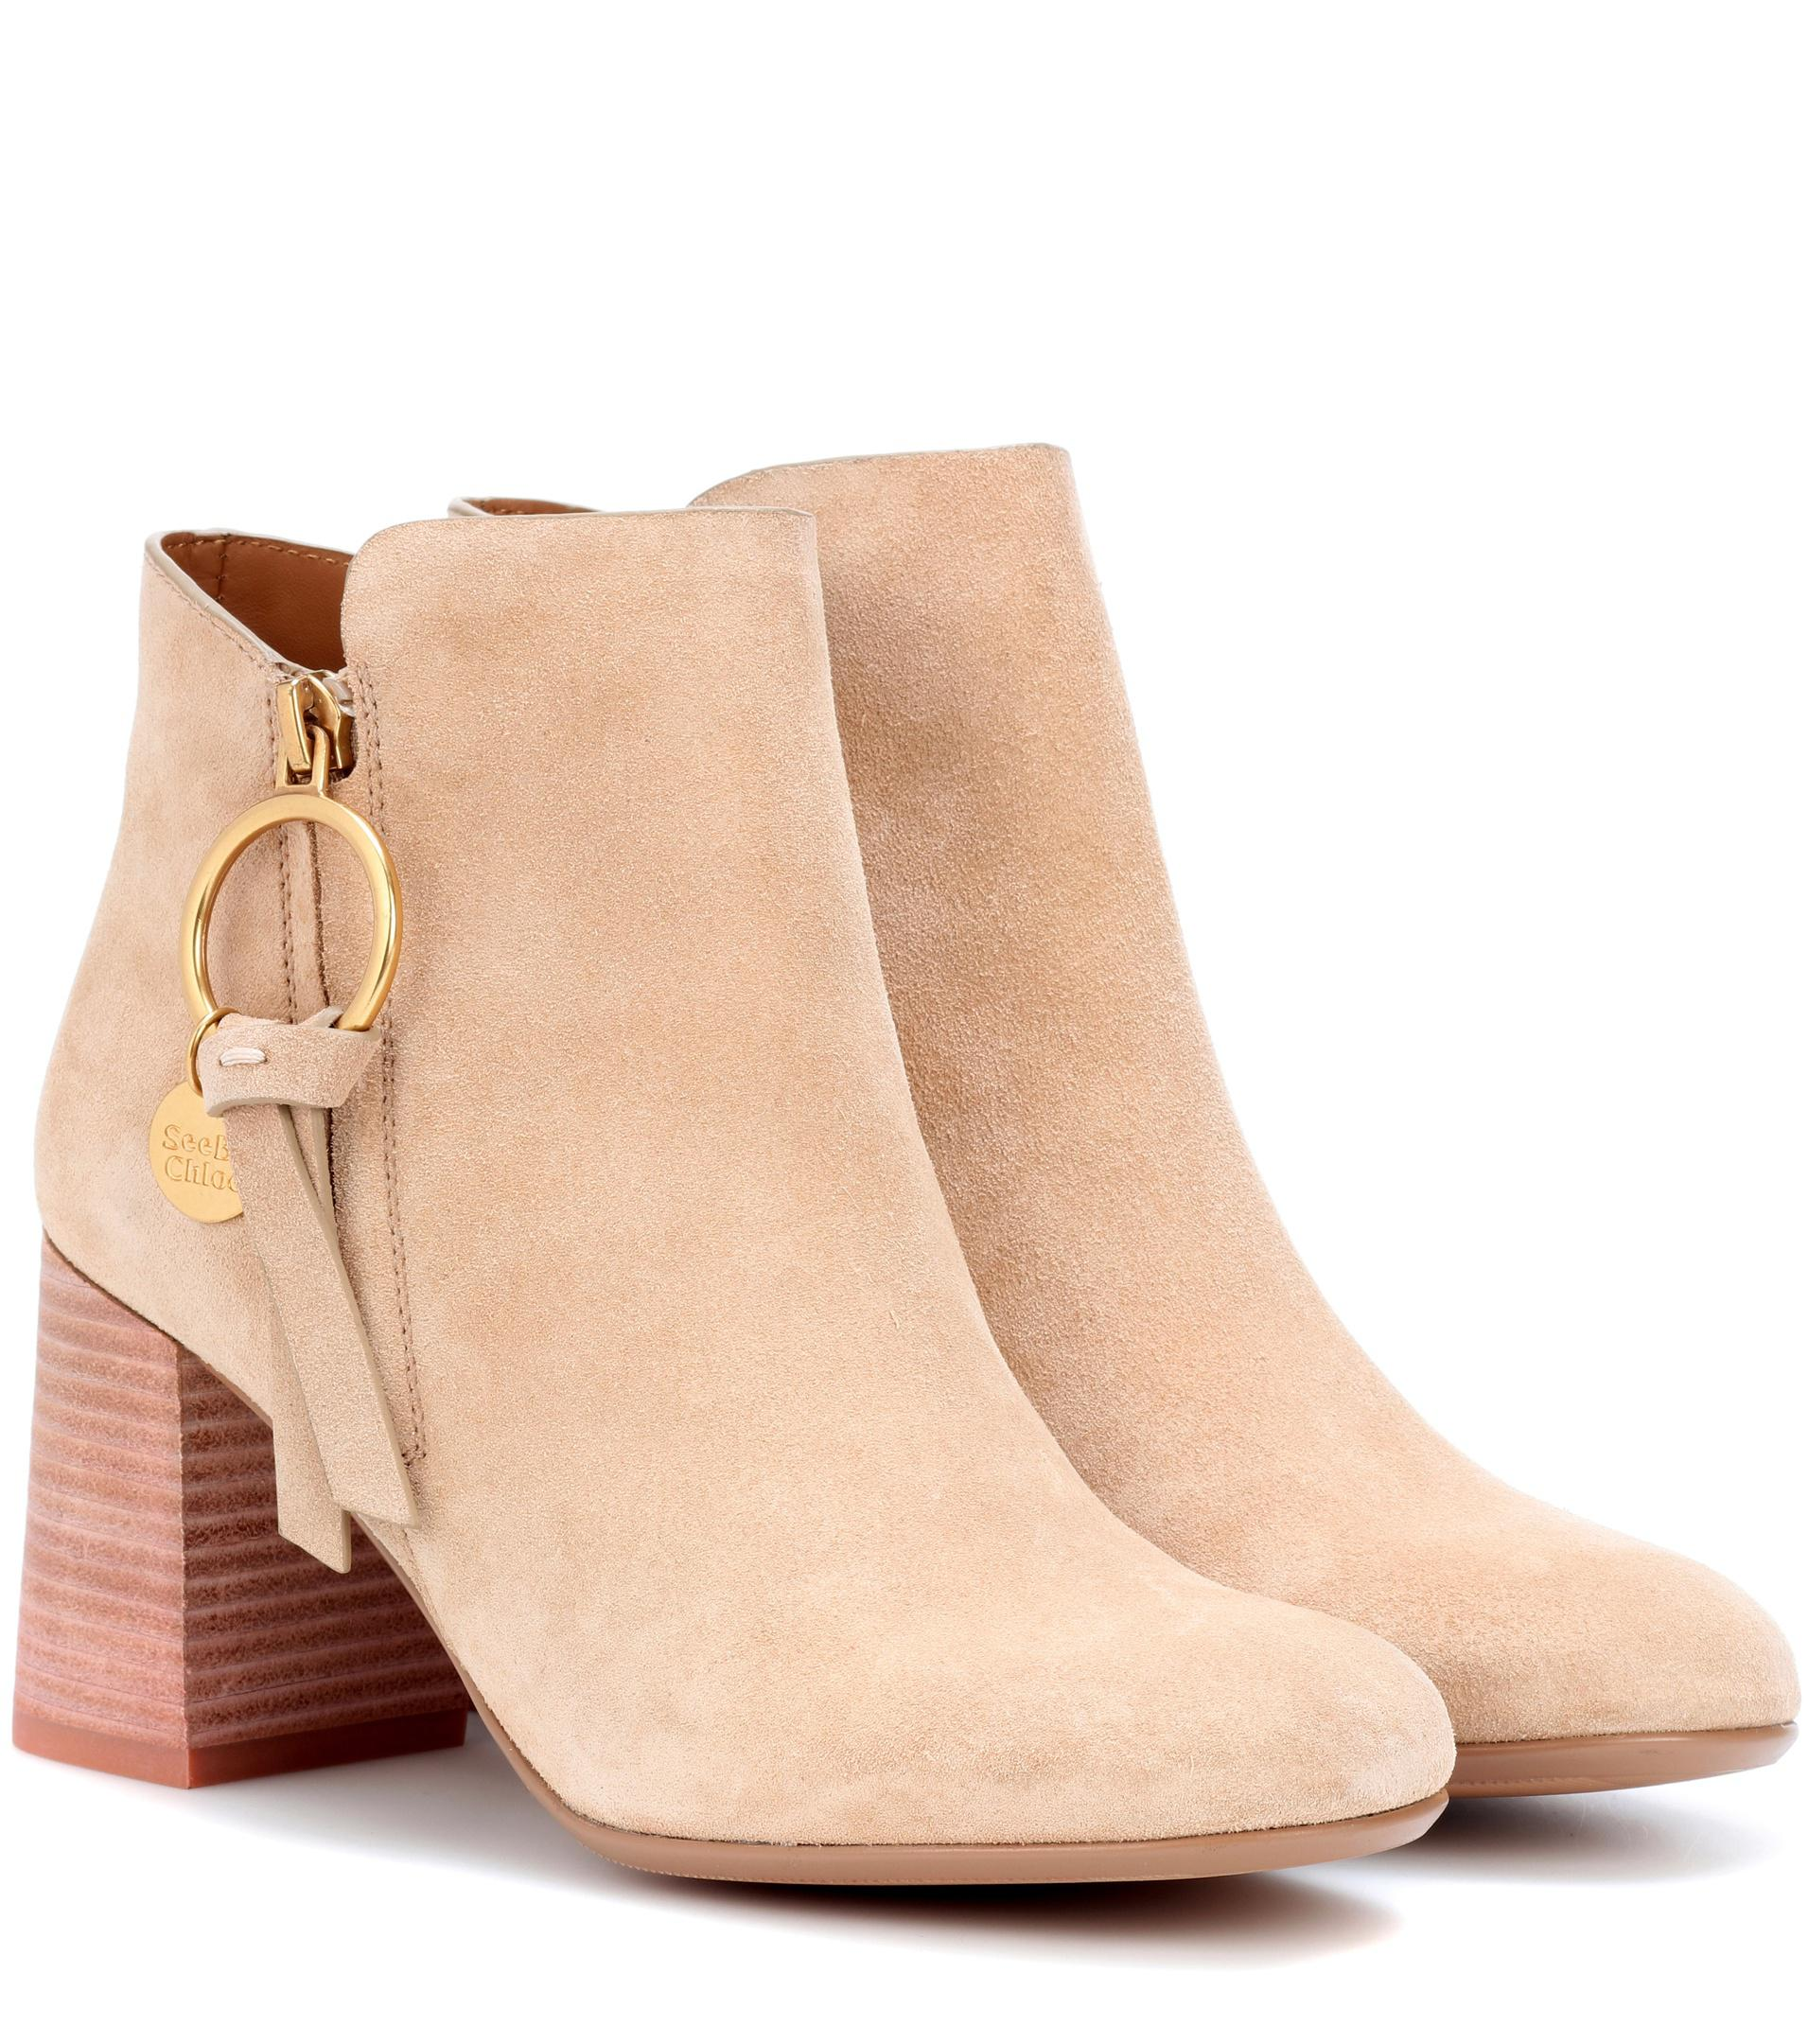 Chloé 40MM SUEDE ANKLE BOOTS W732Nk